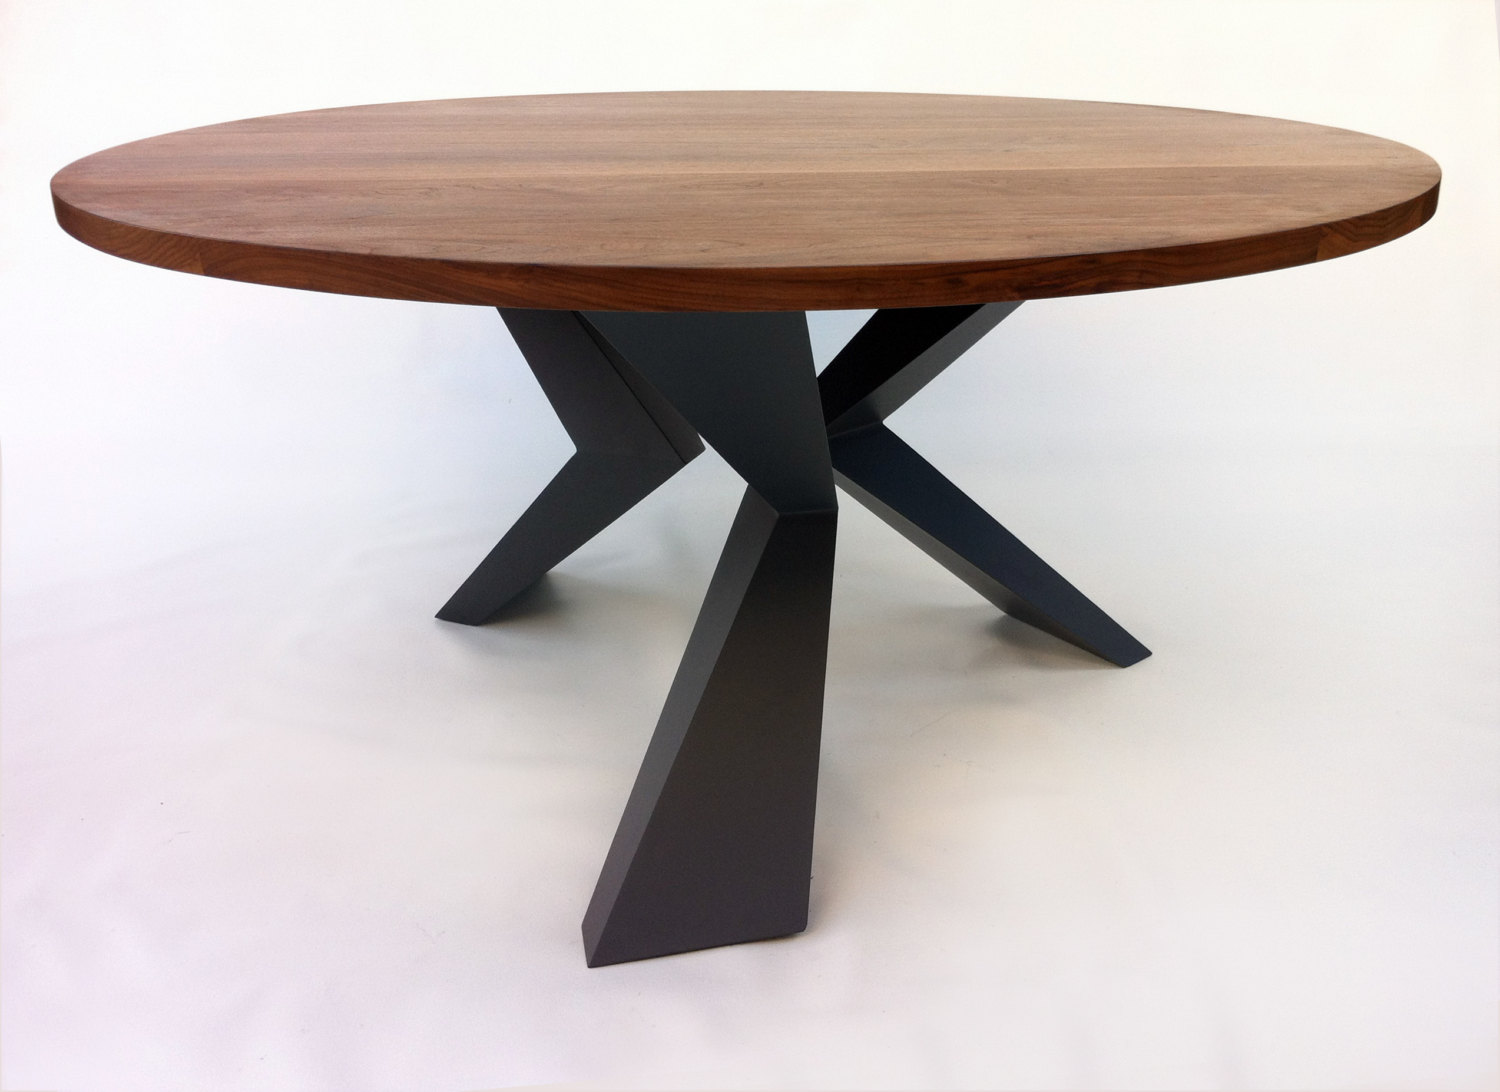 Contemporary Modern Round Dining Table Solid Walnut with Bird Legs